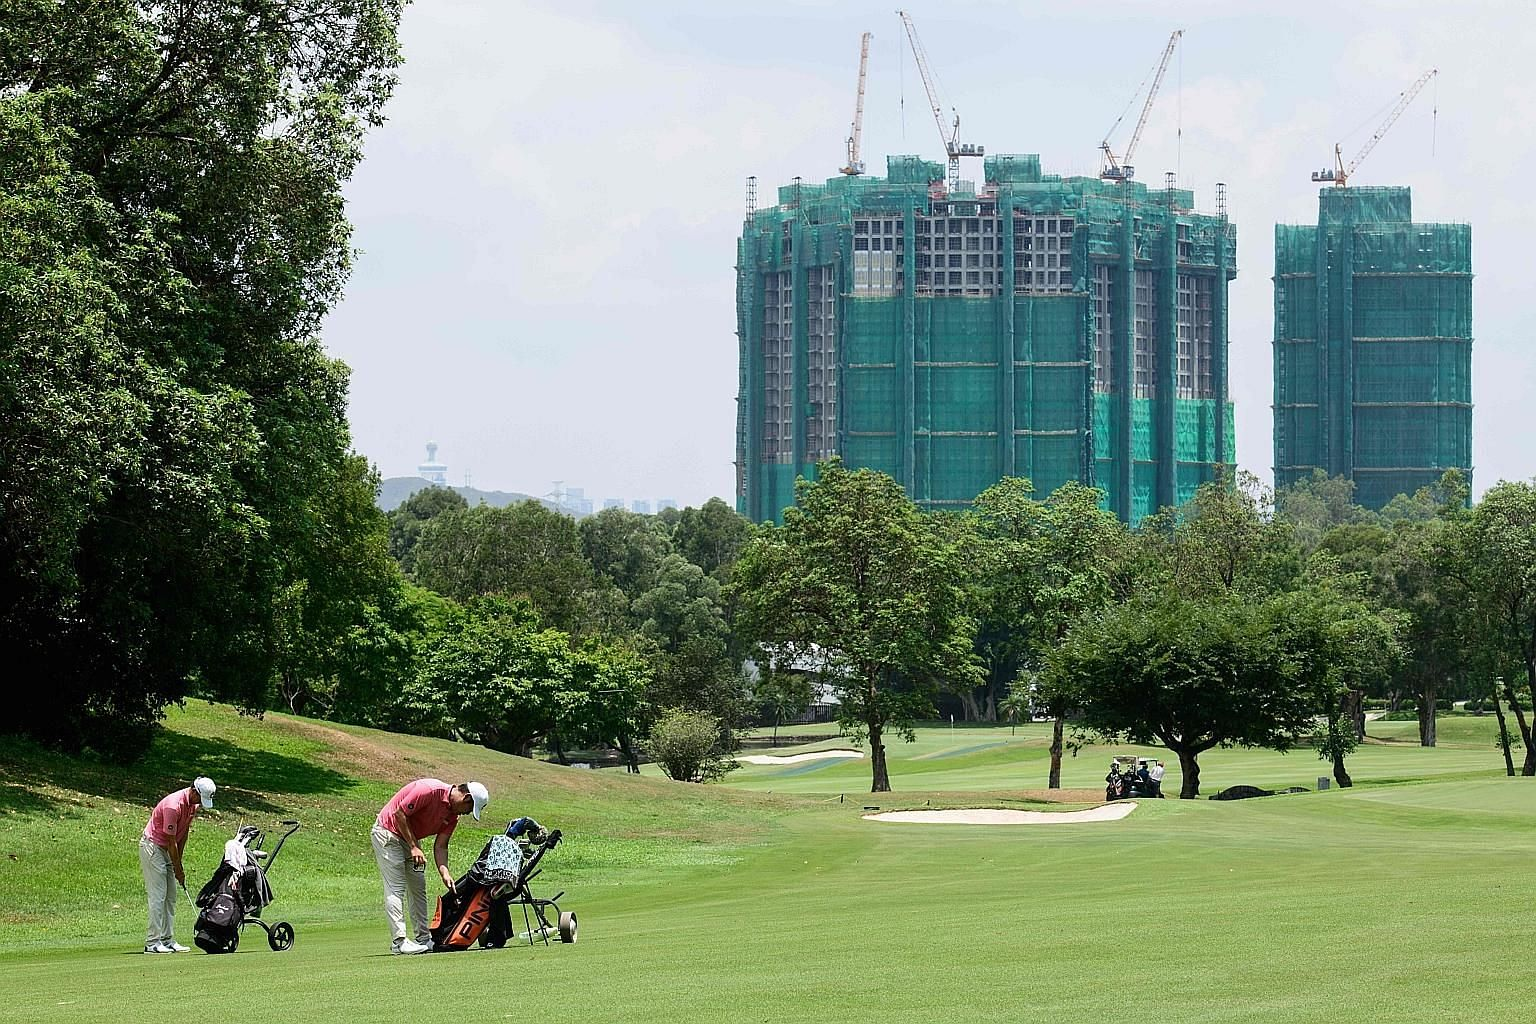 Golfers at Hong Kong's exclusive Fanling golf course tee off to views of construction as lawmakers seek to increase housing supply in the densely populated city. The government will take back 32ha of land, nearly a fifth, from the golf course as earl